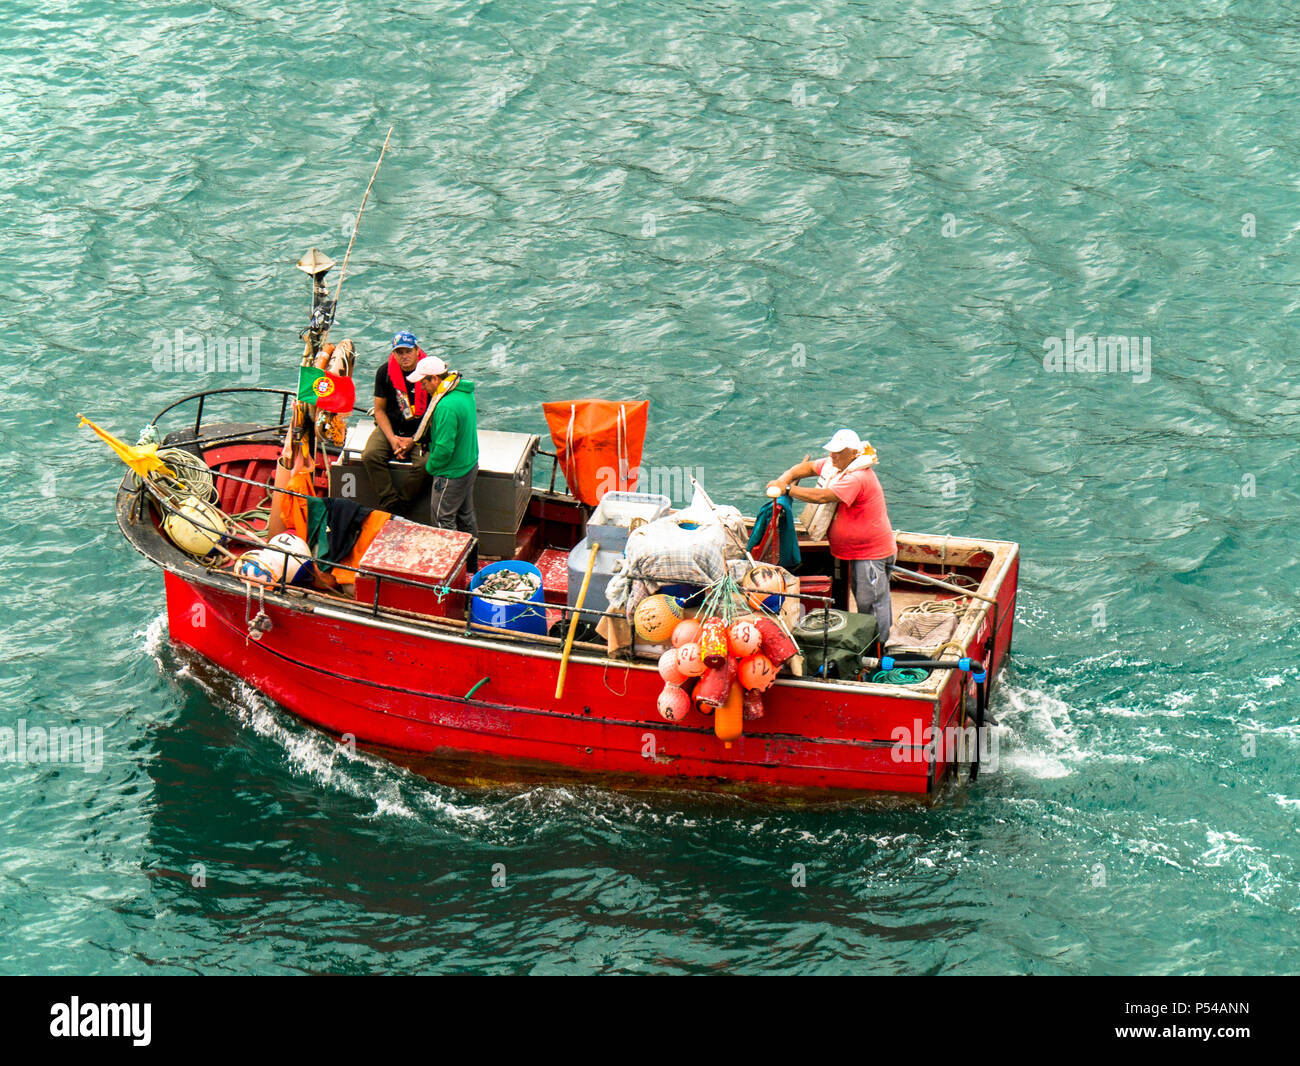 small open Portugese fishing boat, Funchal,Madeira - Stock Image